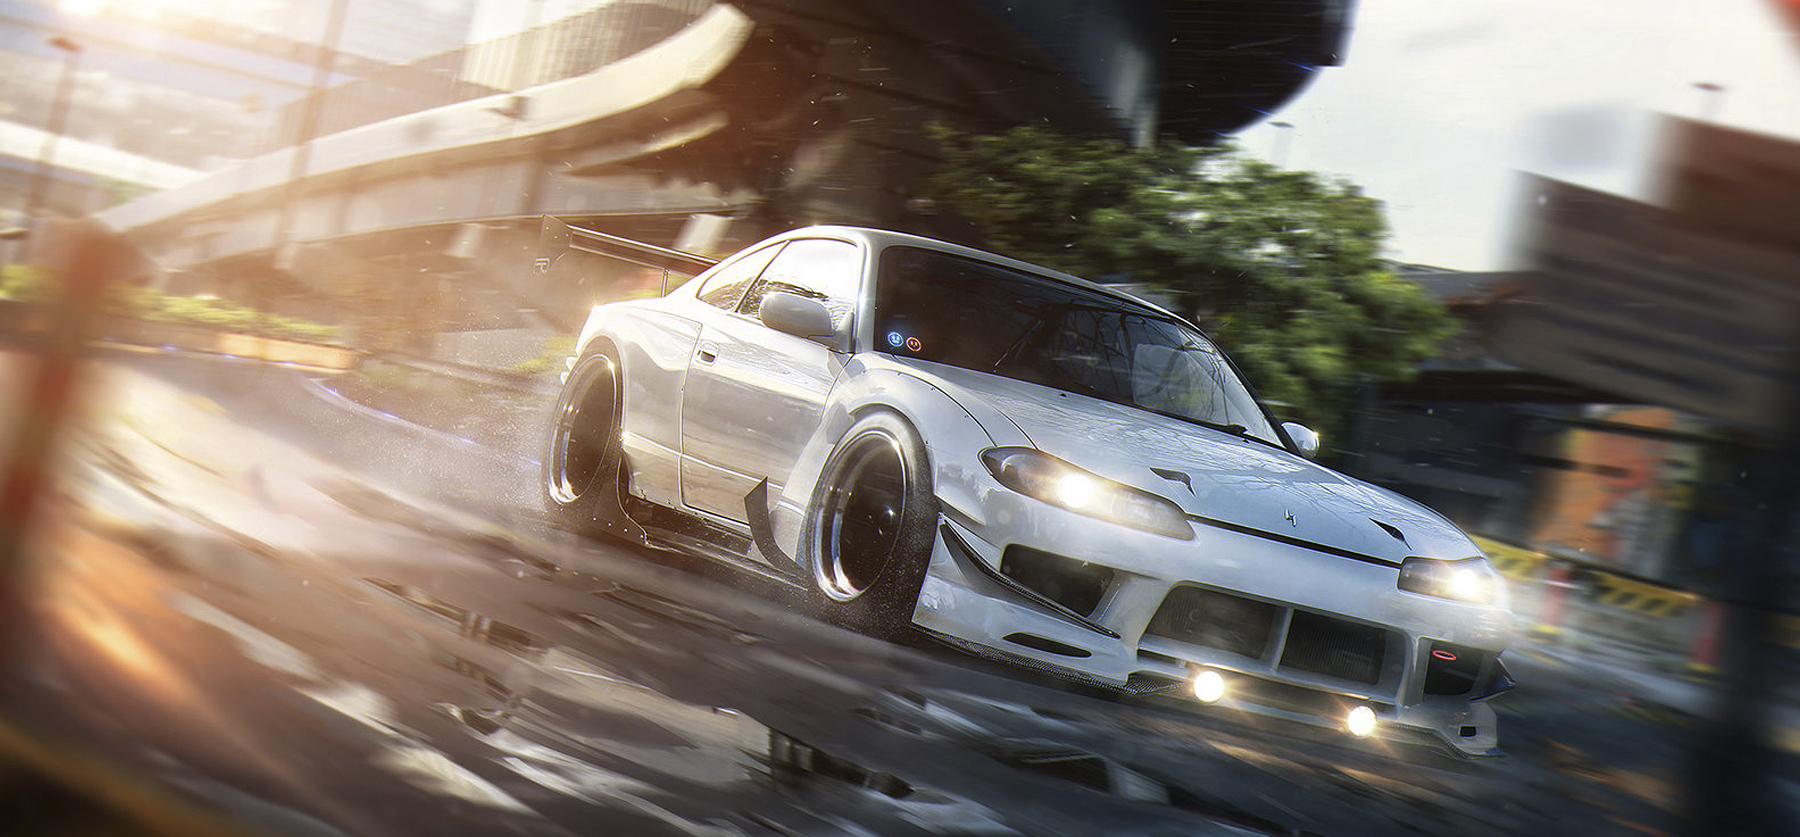 On The Run: a personal art work. Inspired by PlayStation 4 title Driveclub.